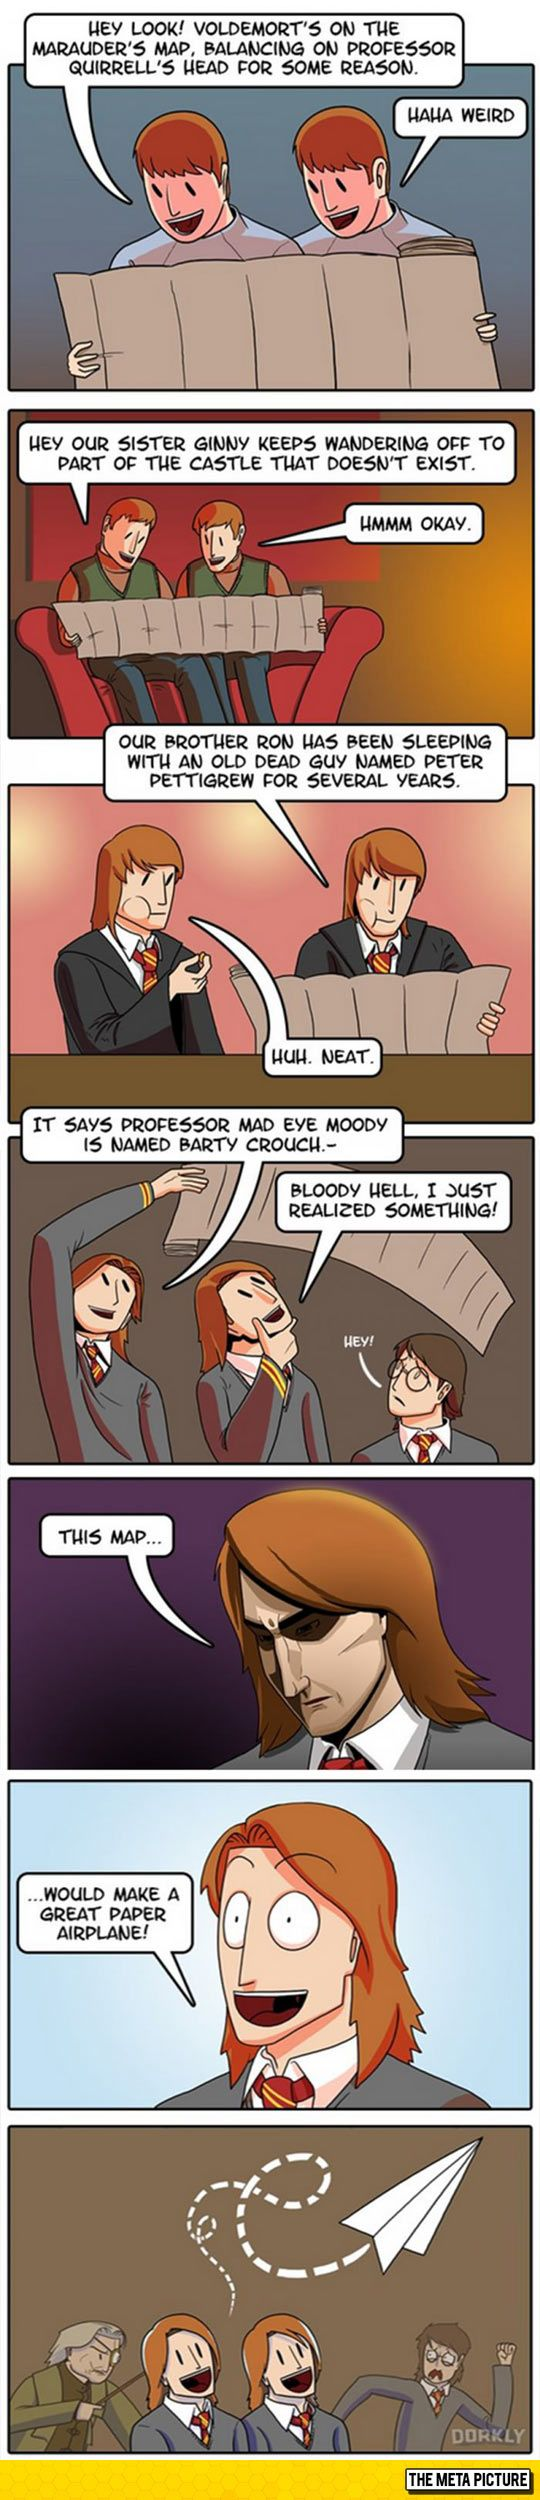 best hp images on pinterest funny stuff hilarious and jokes